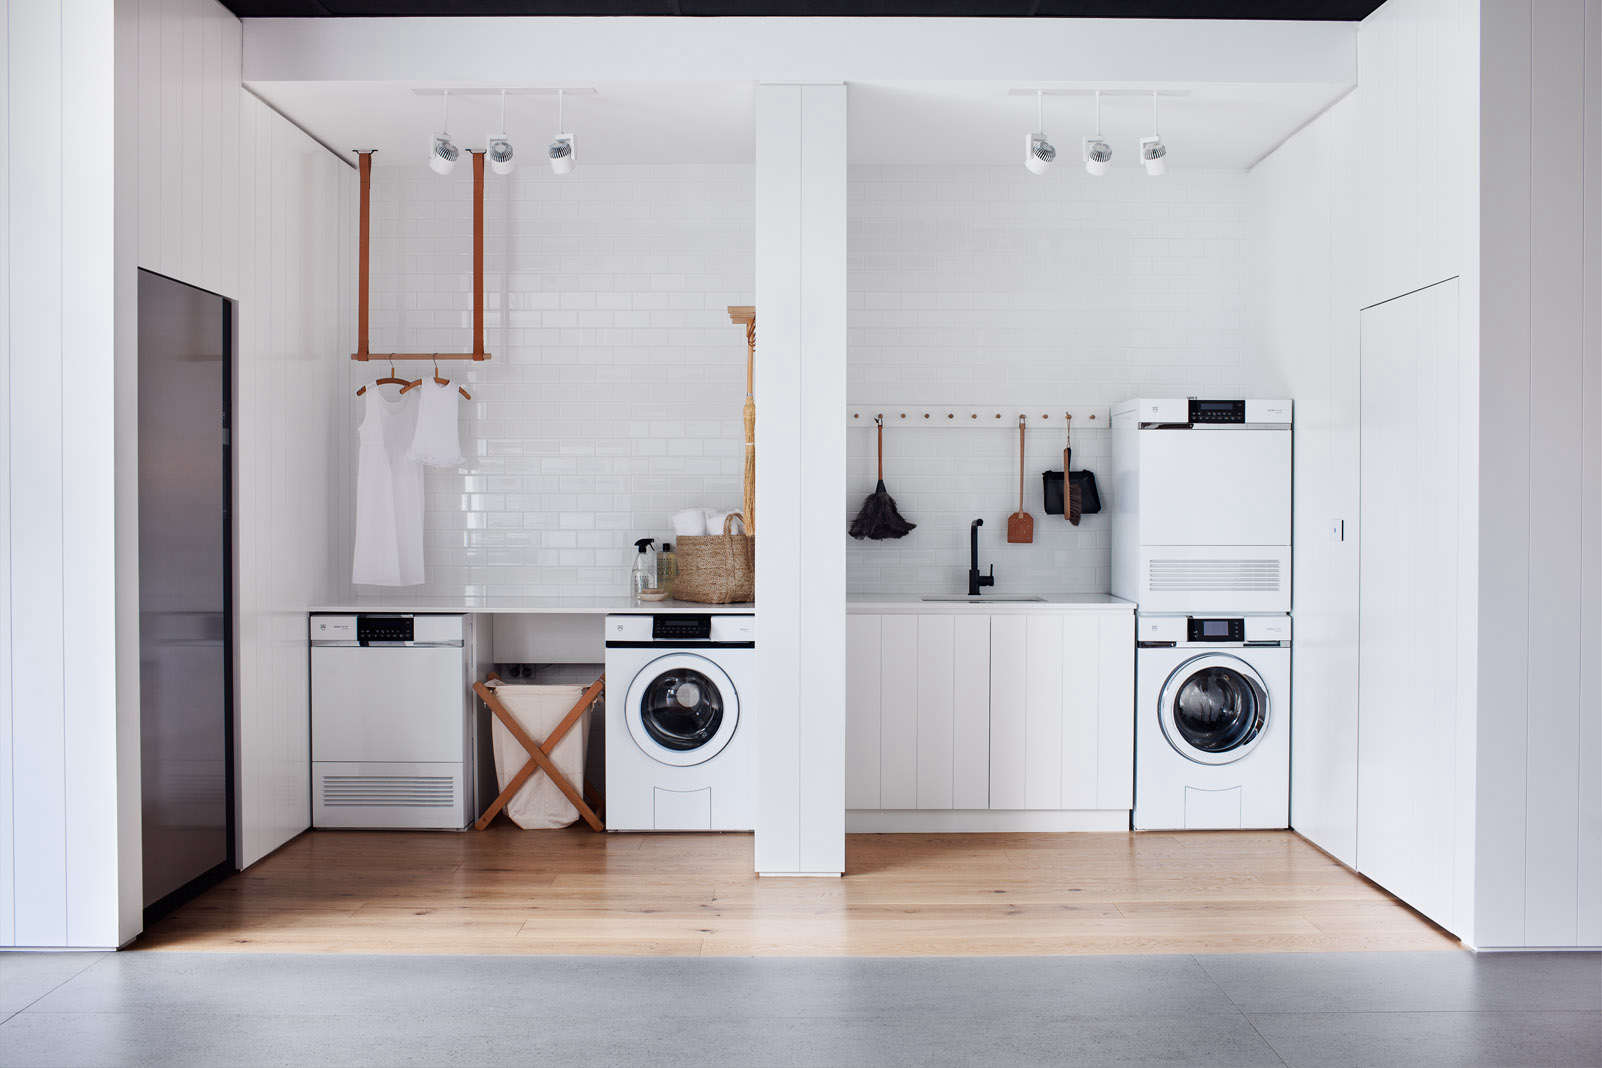 V Zug Whitling Architects Melbourne Australia Laundry Room